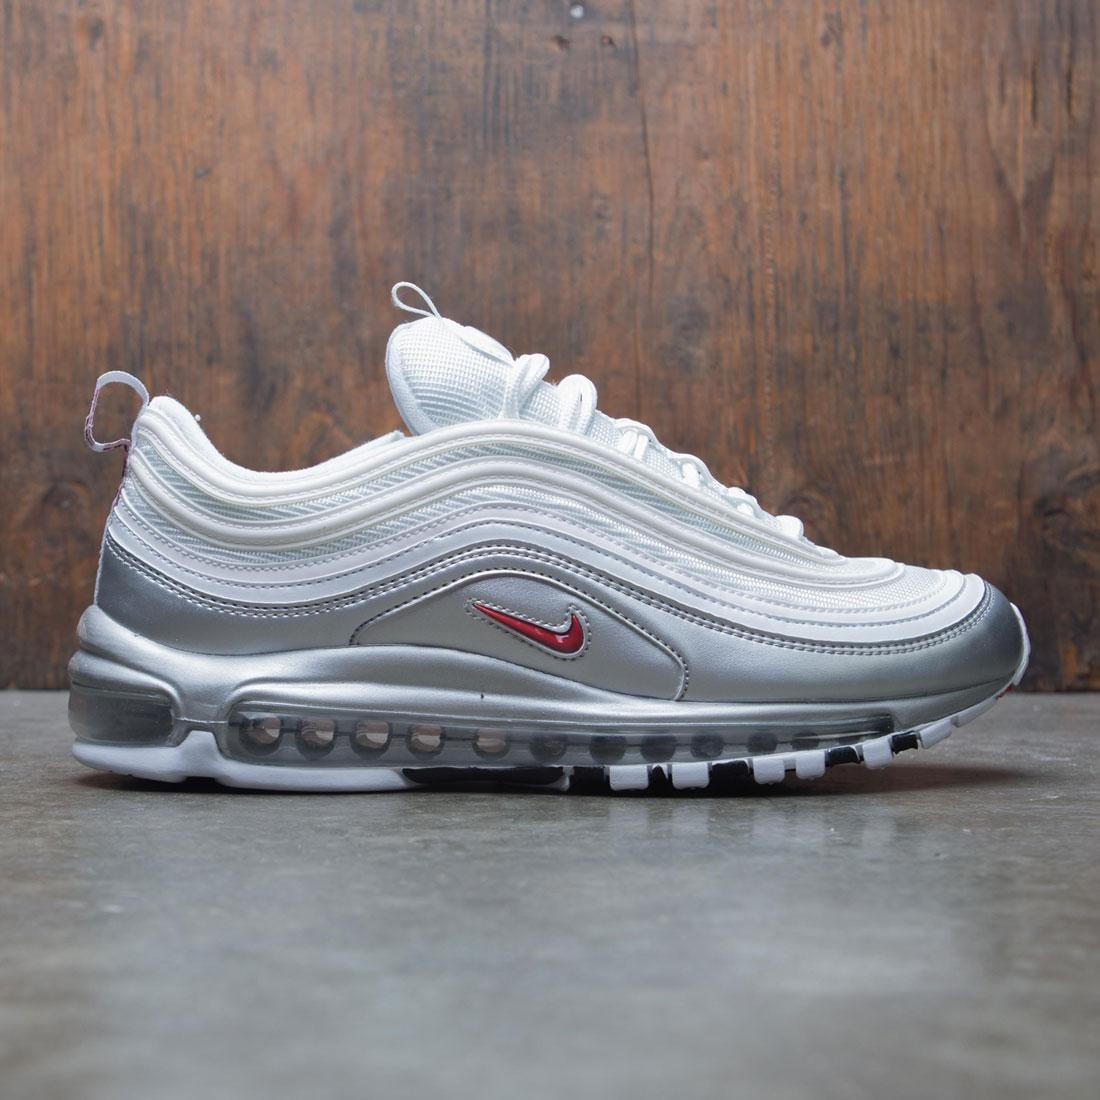 efaf018253 nike men air max 97 qs white varsity red metallic silver black